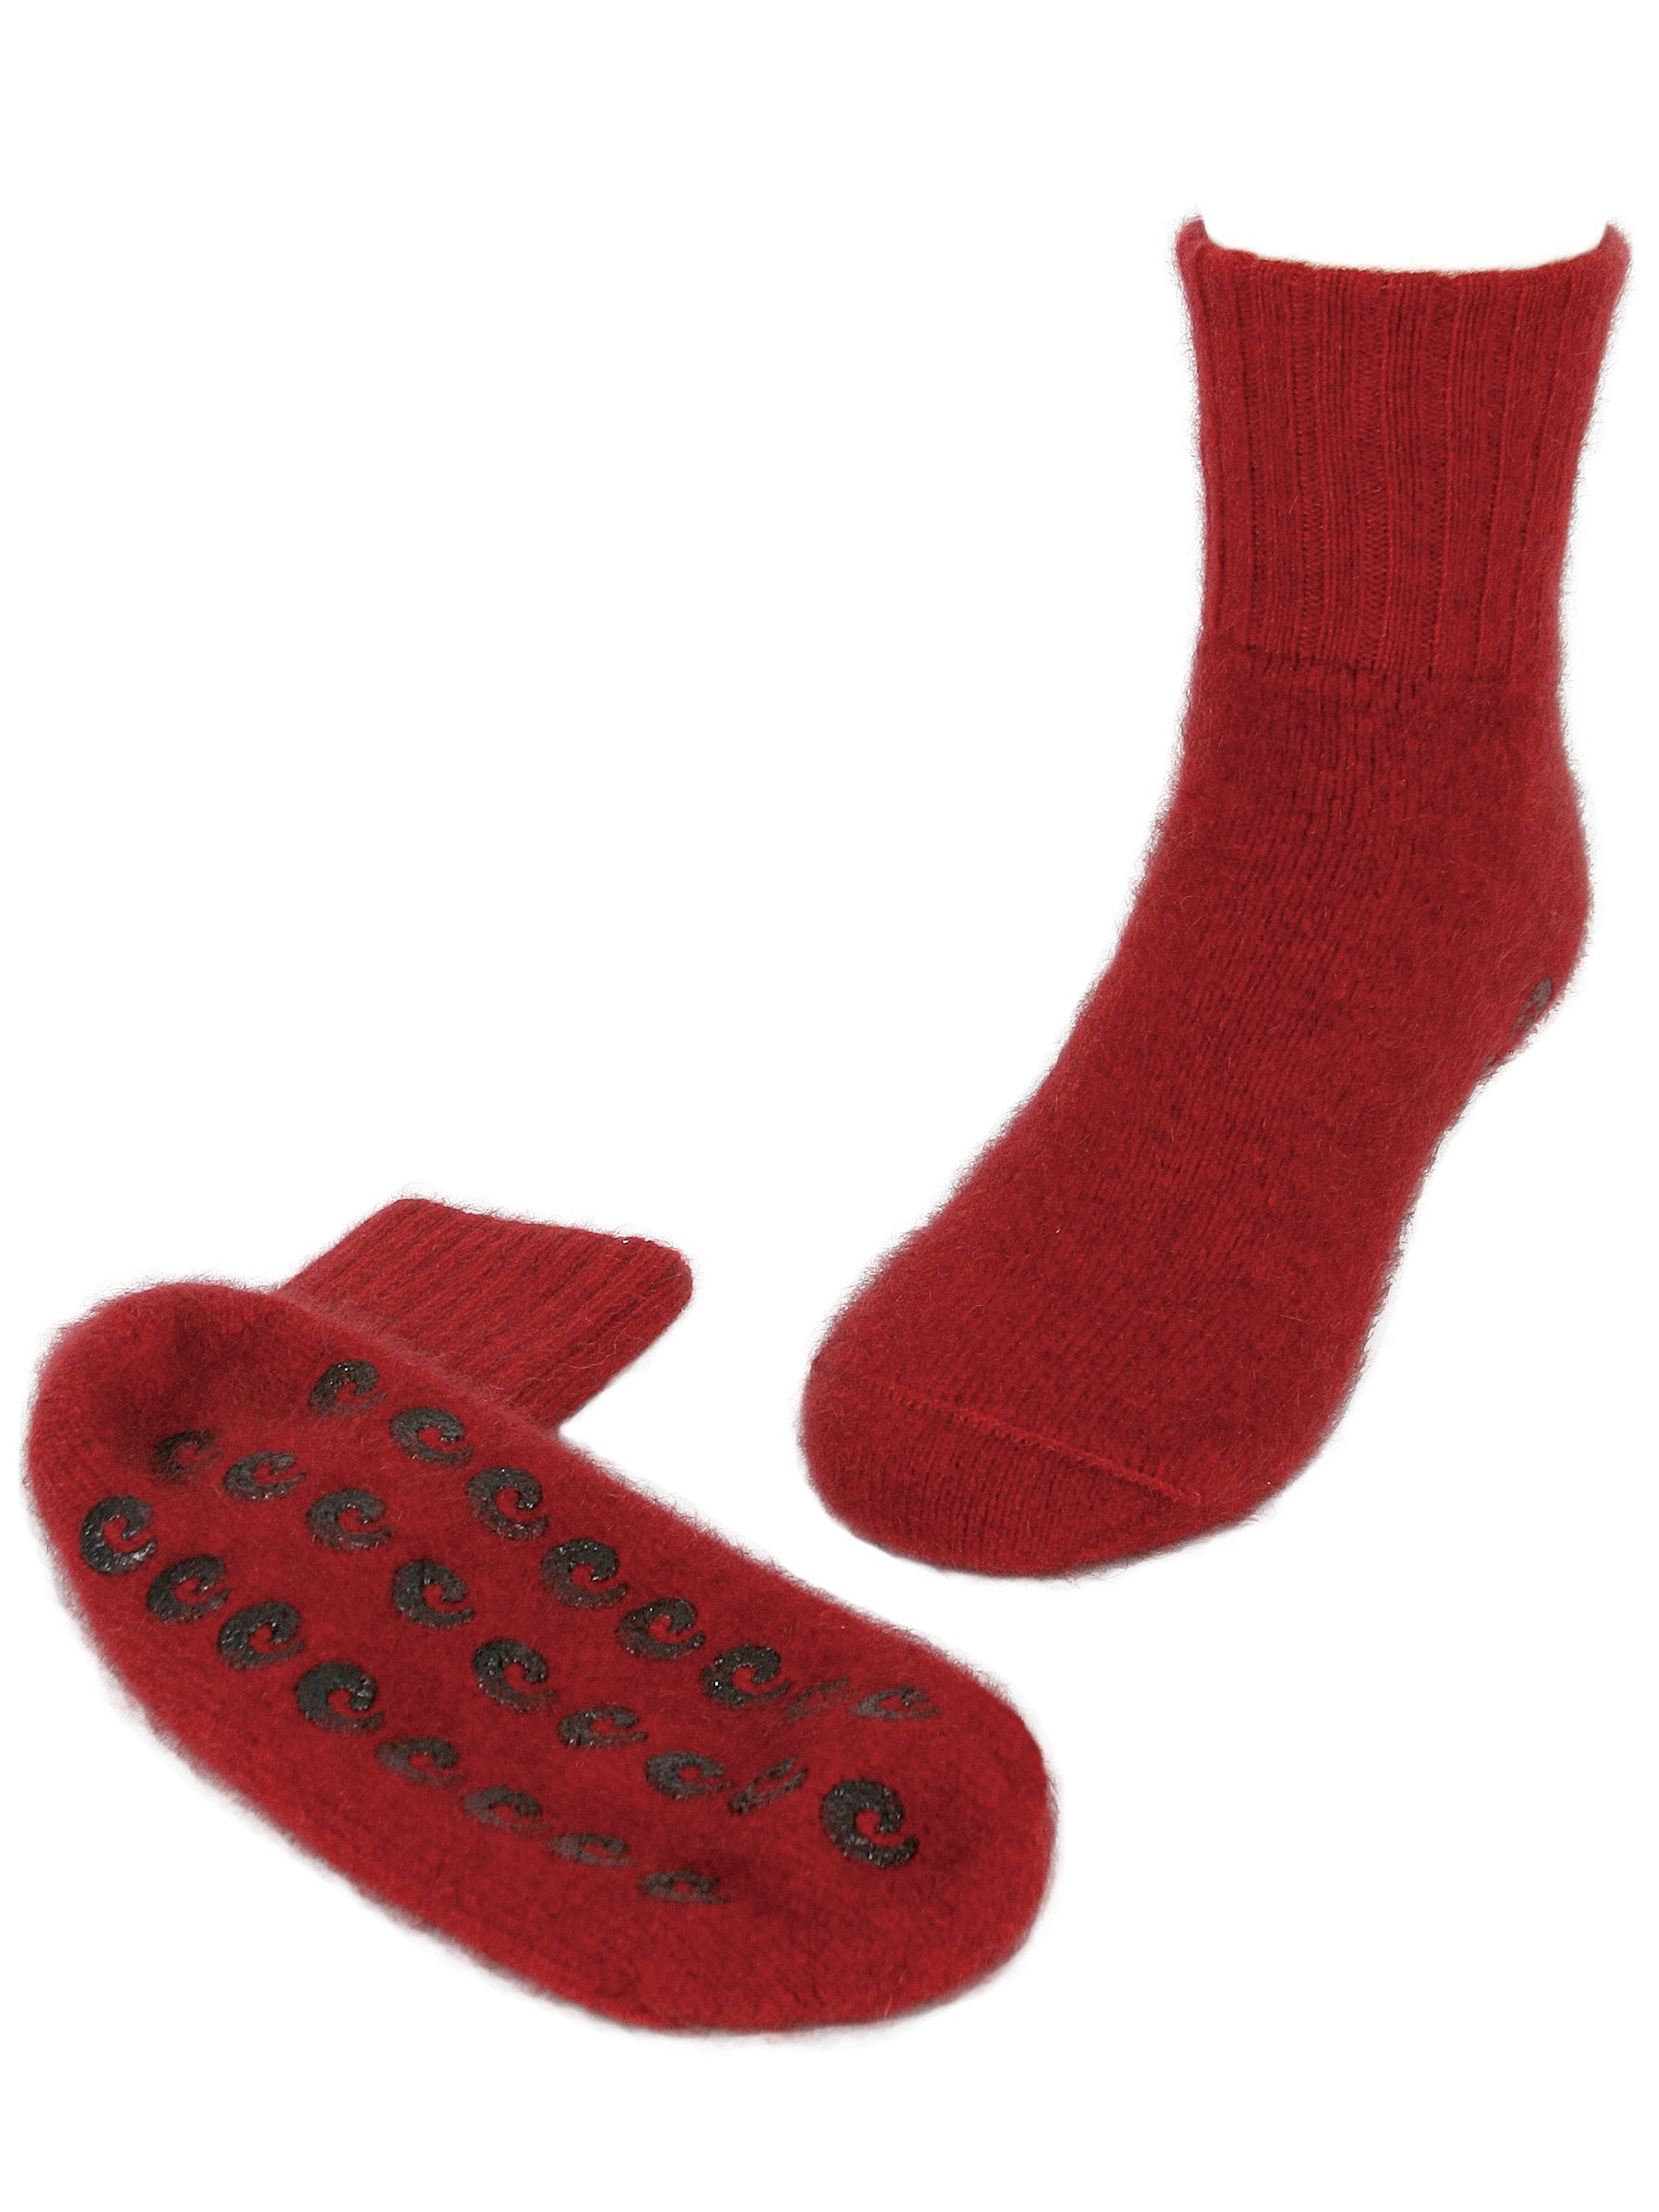 HOUSE SOCK - Woolshed Gallery